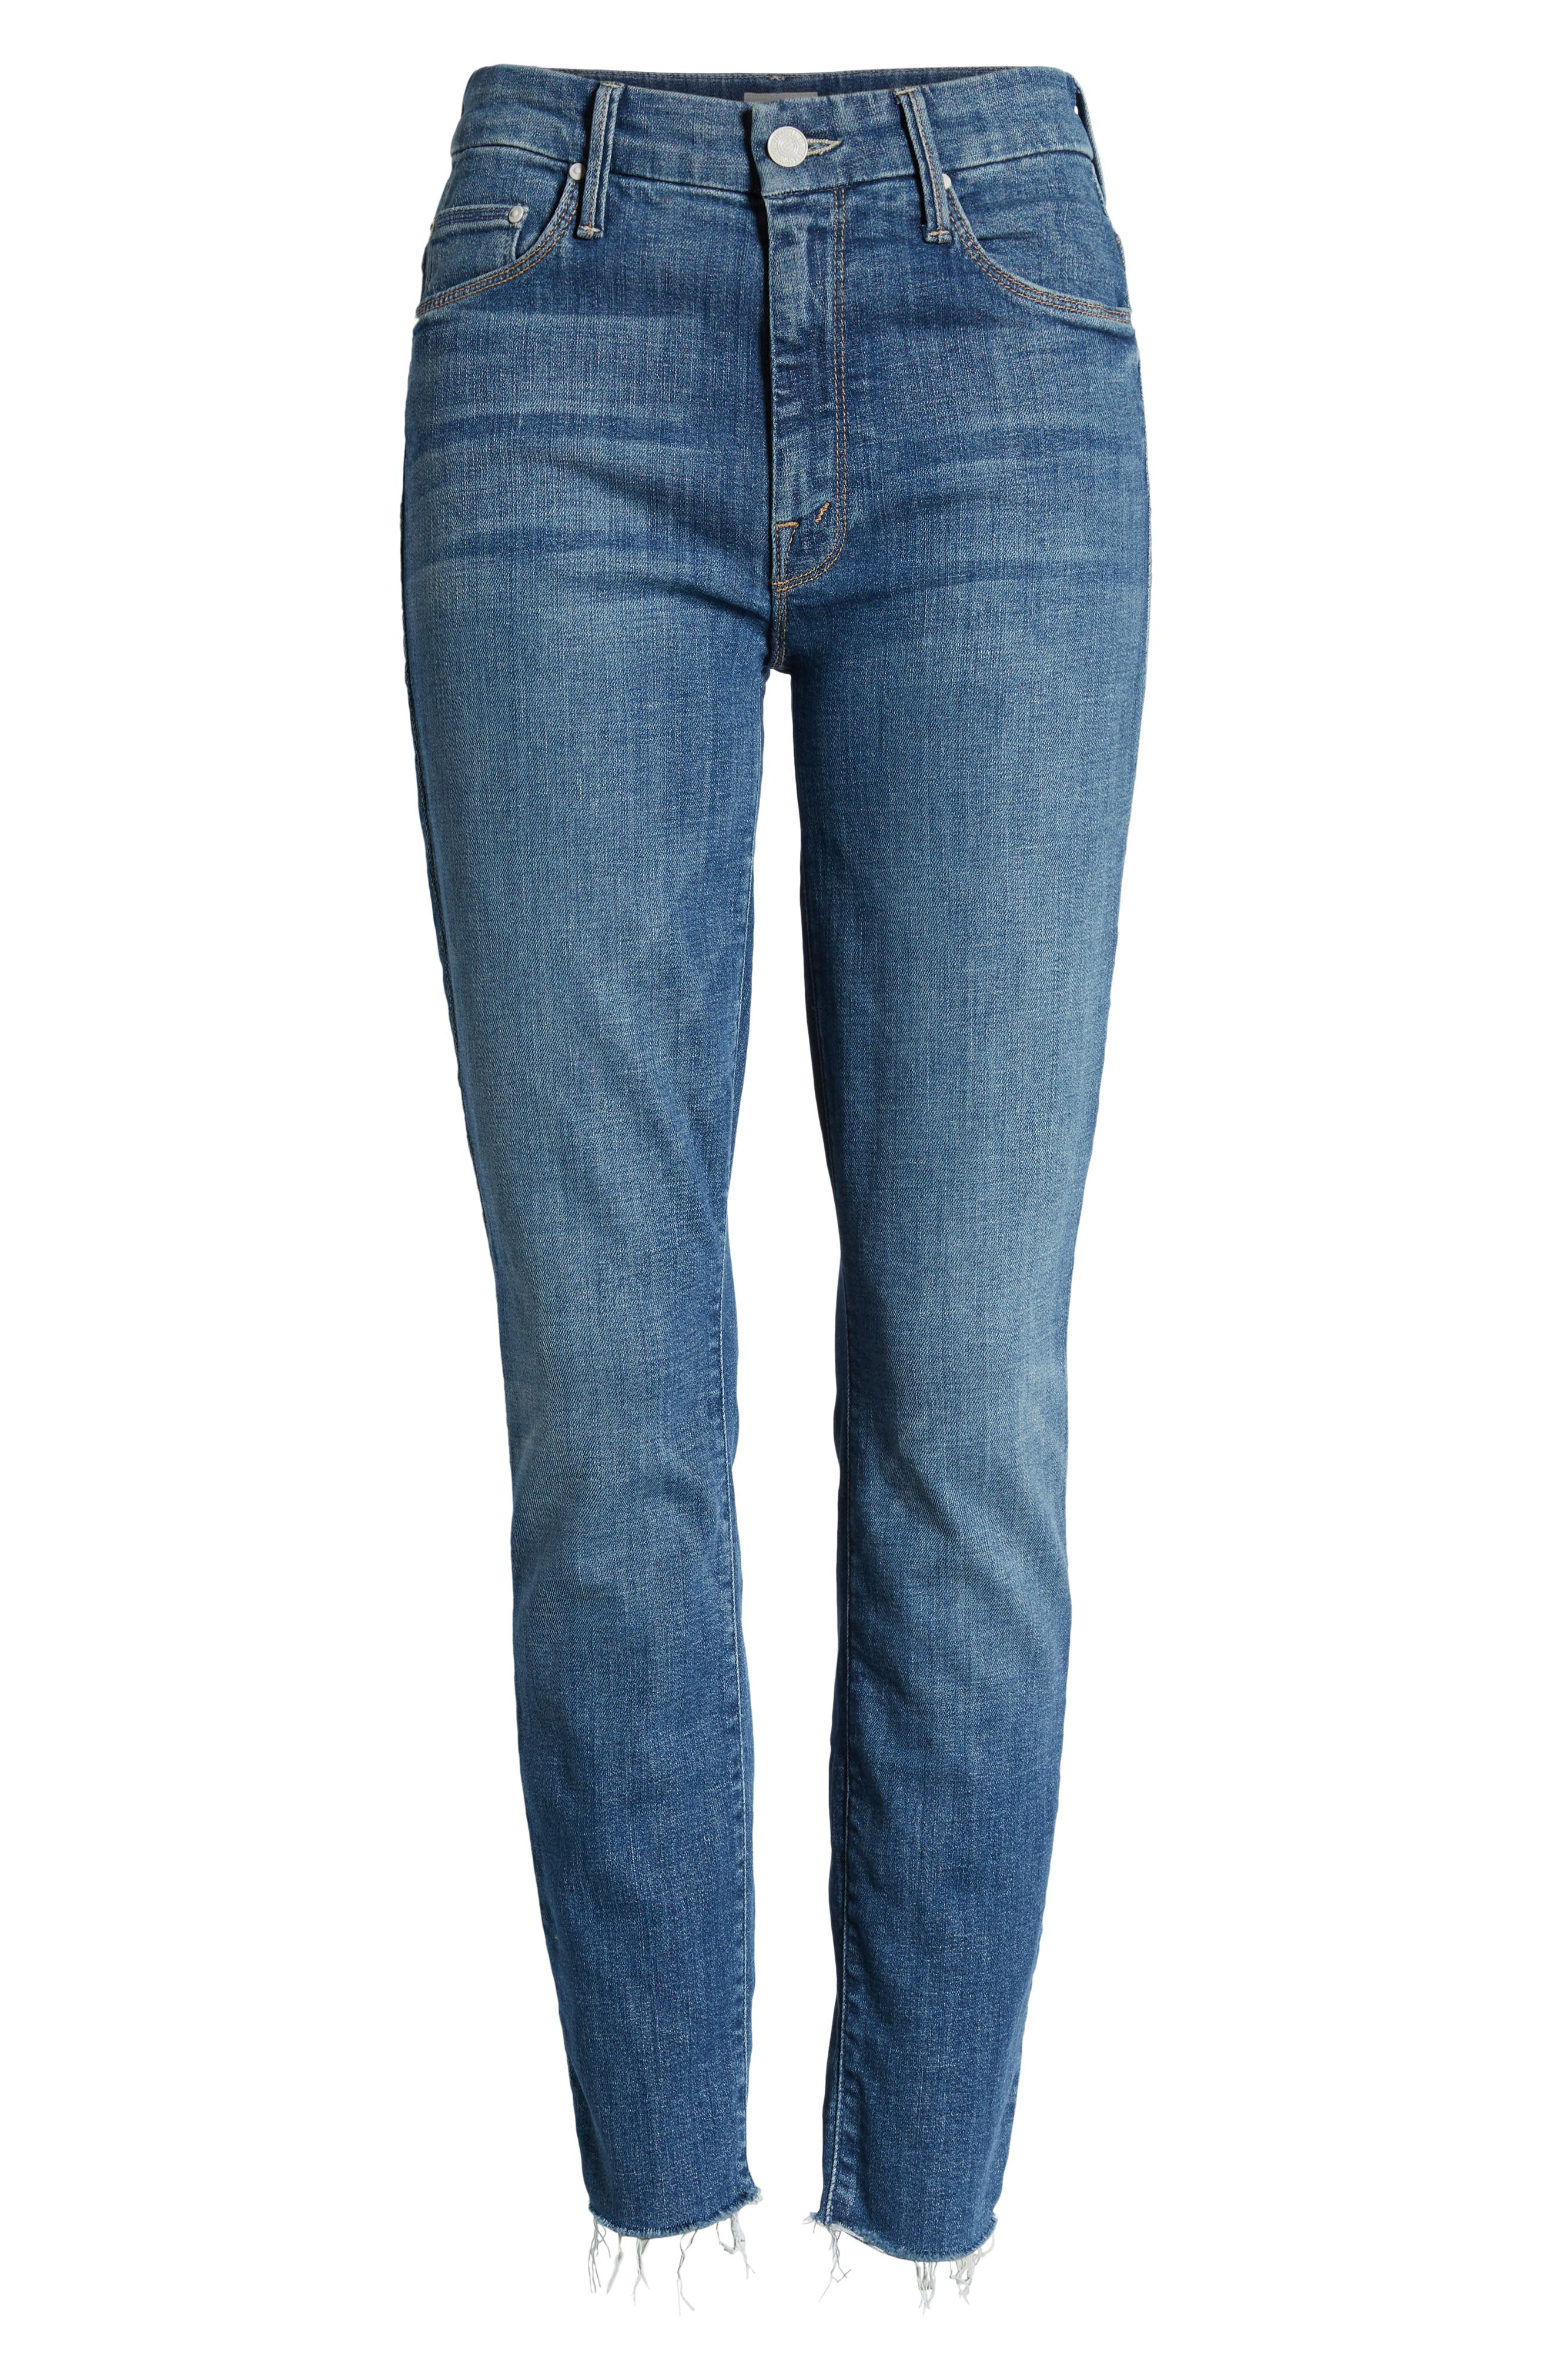 MOTHER, The Looker Frayed Ankle Jeans, Alternate thumbnail 7, color, ONE SMART COOKIE